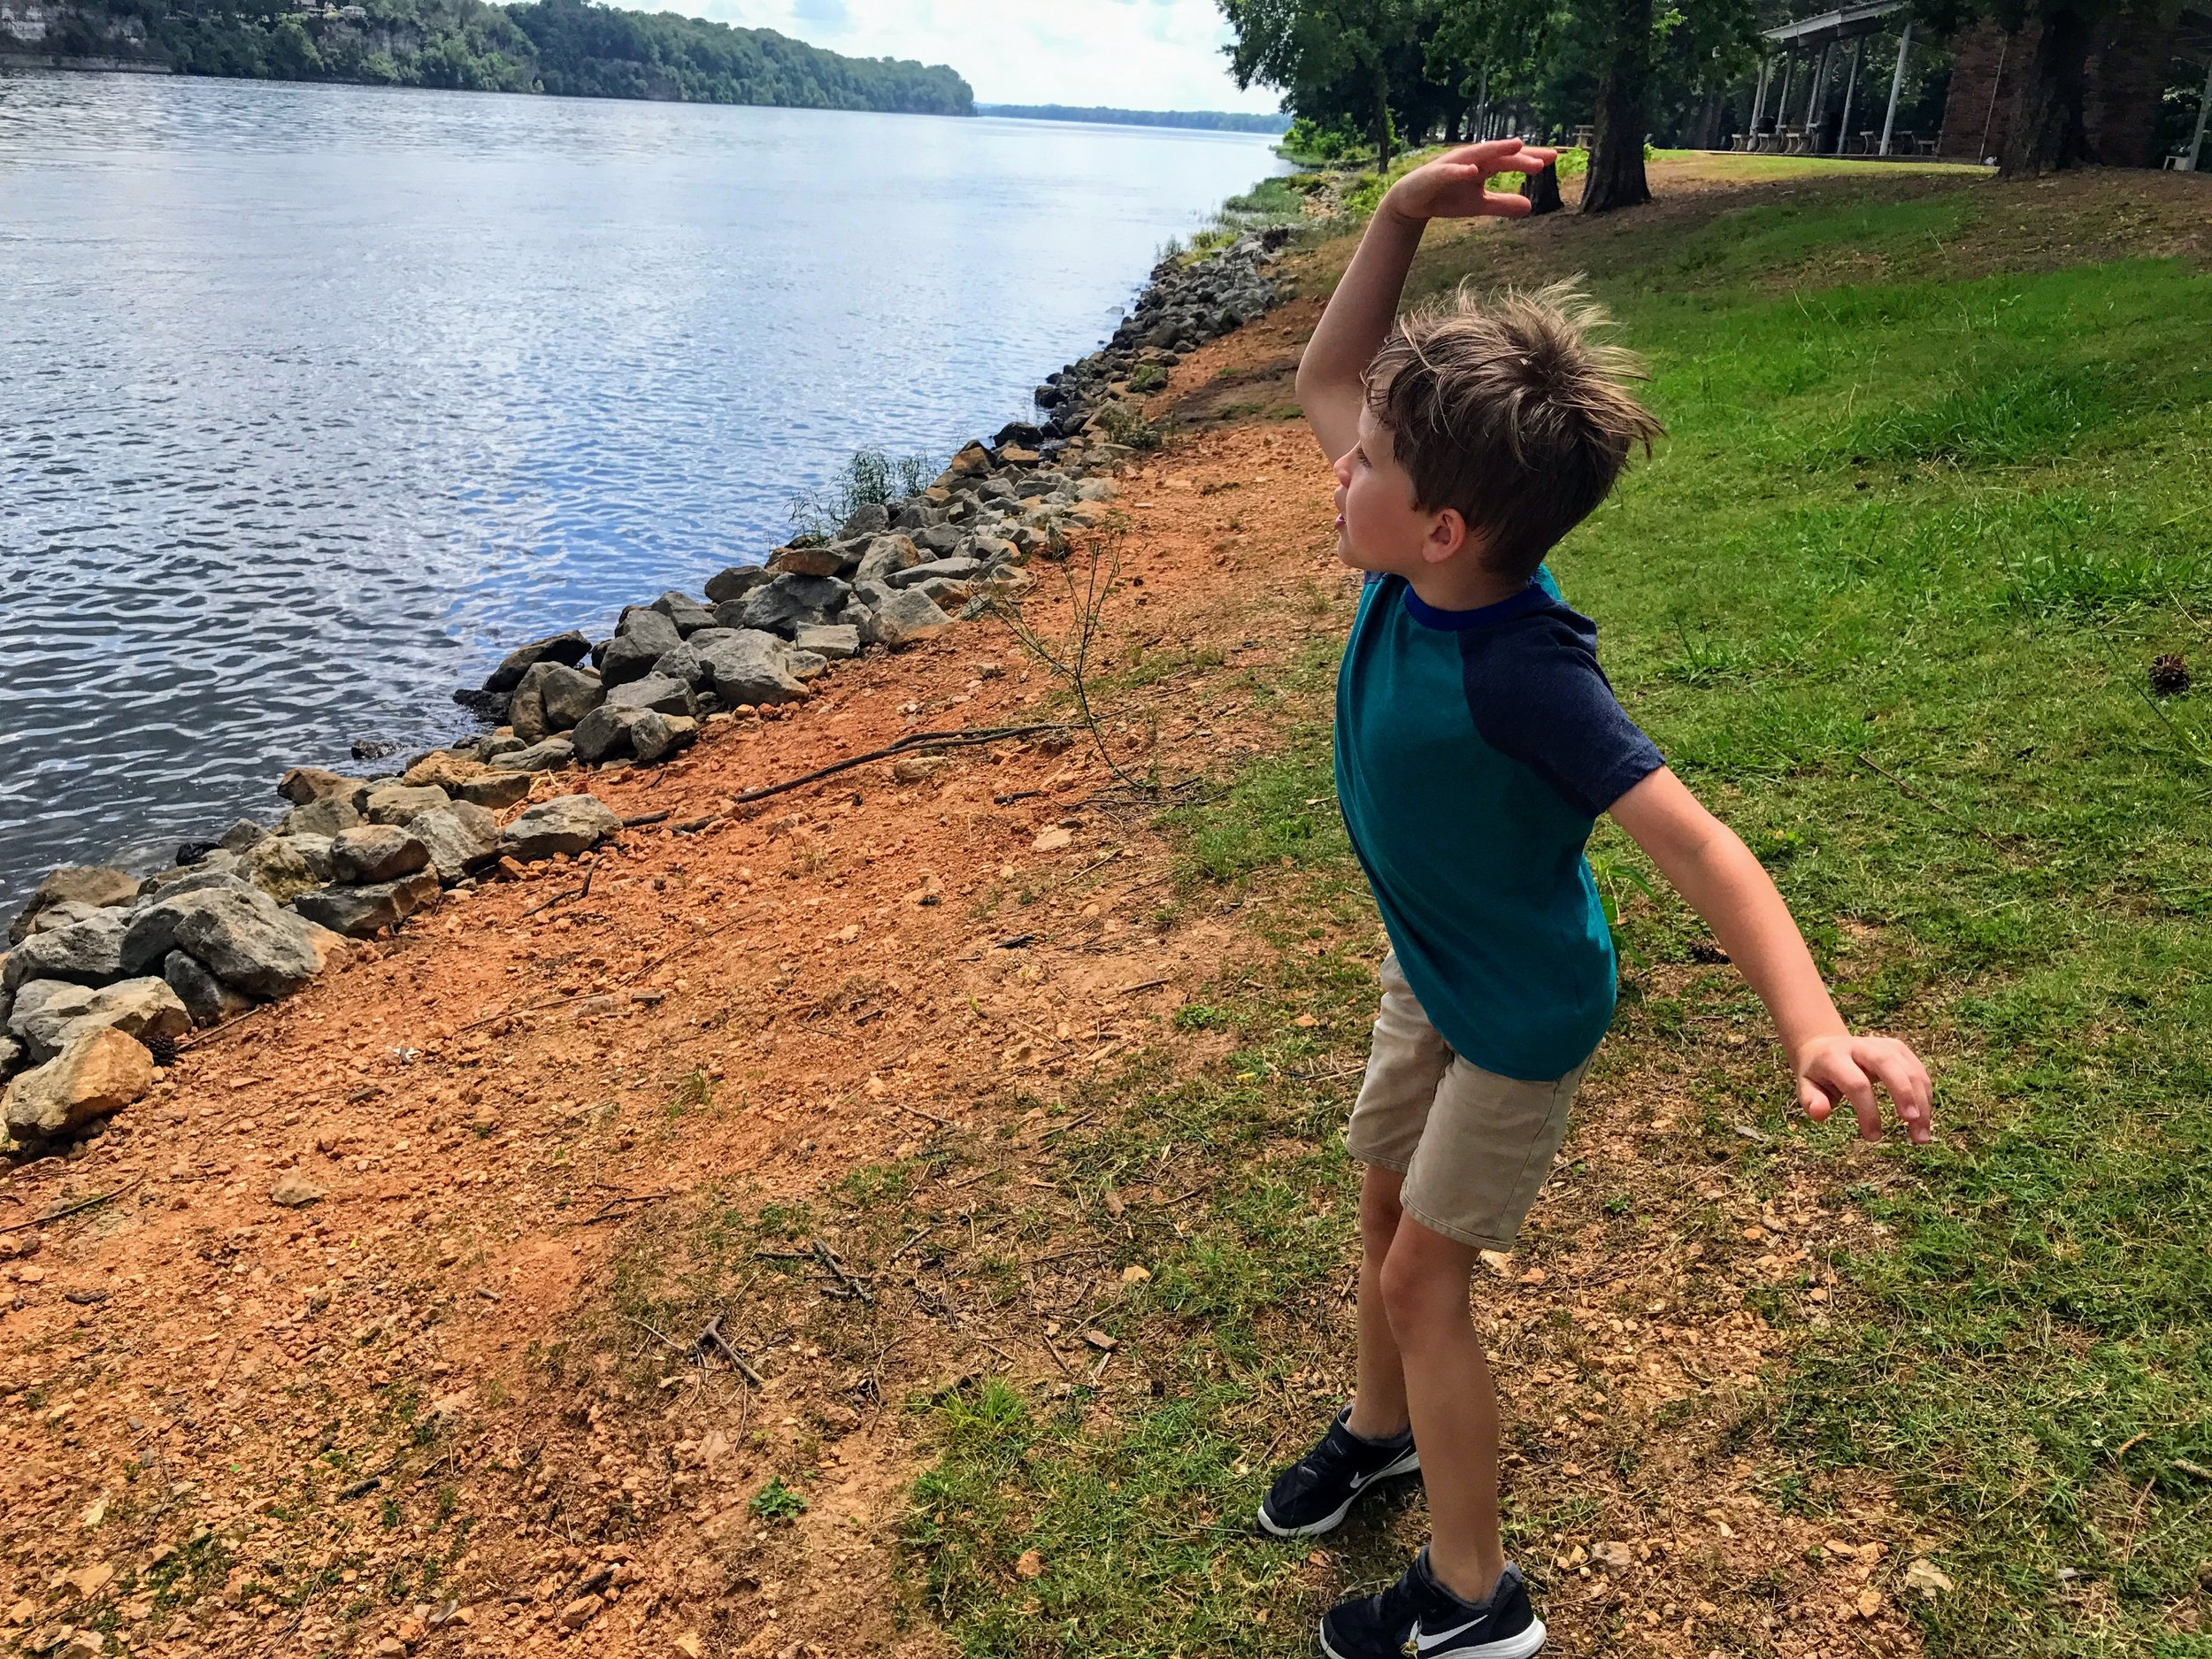 Flinging rocks into the Tennessee River. As one does.